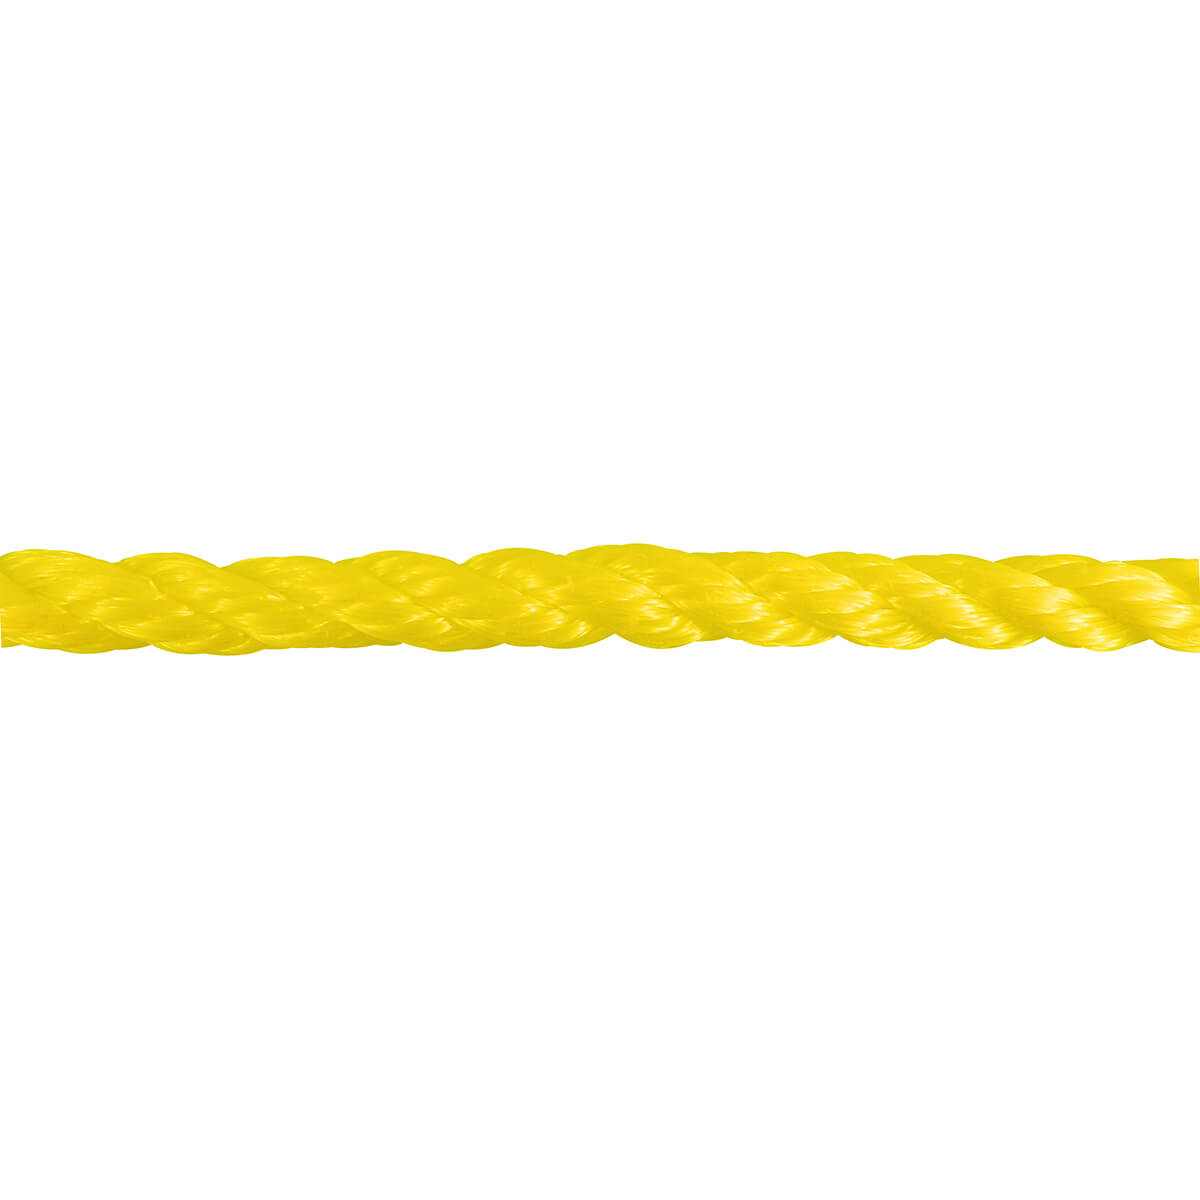 Polypropylene Twisted Rope - Yellow - 1/4-in x 100-ft